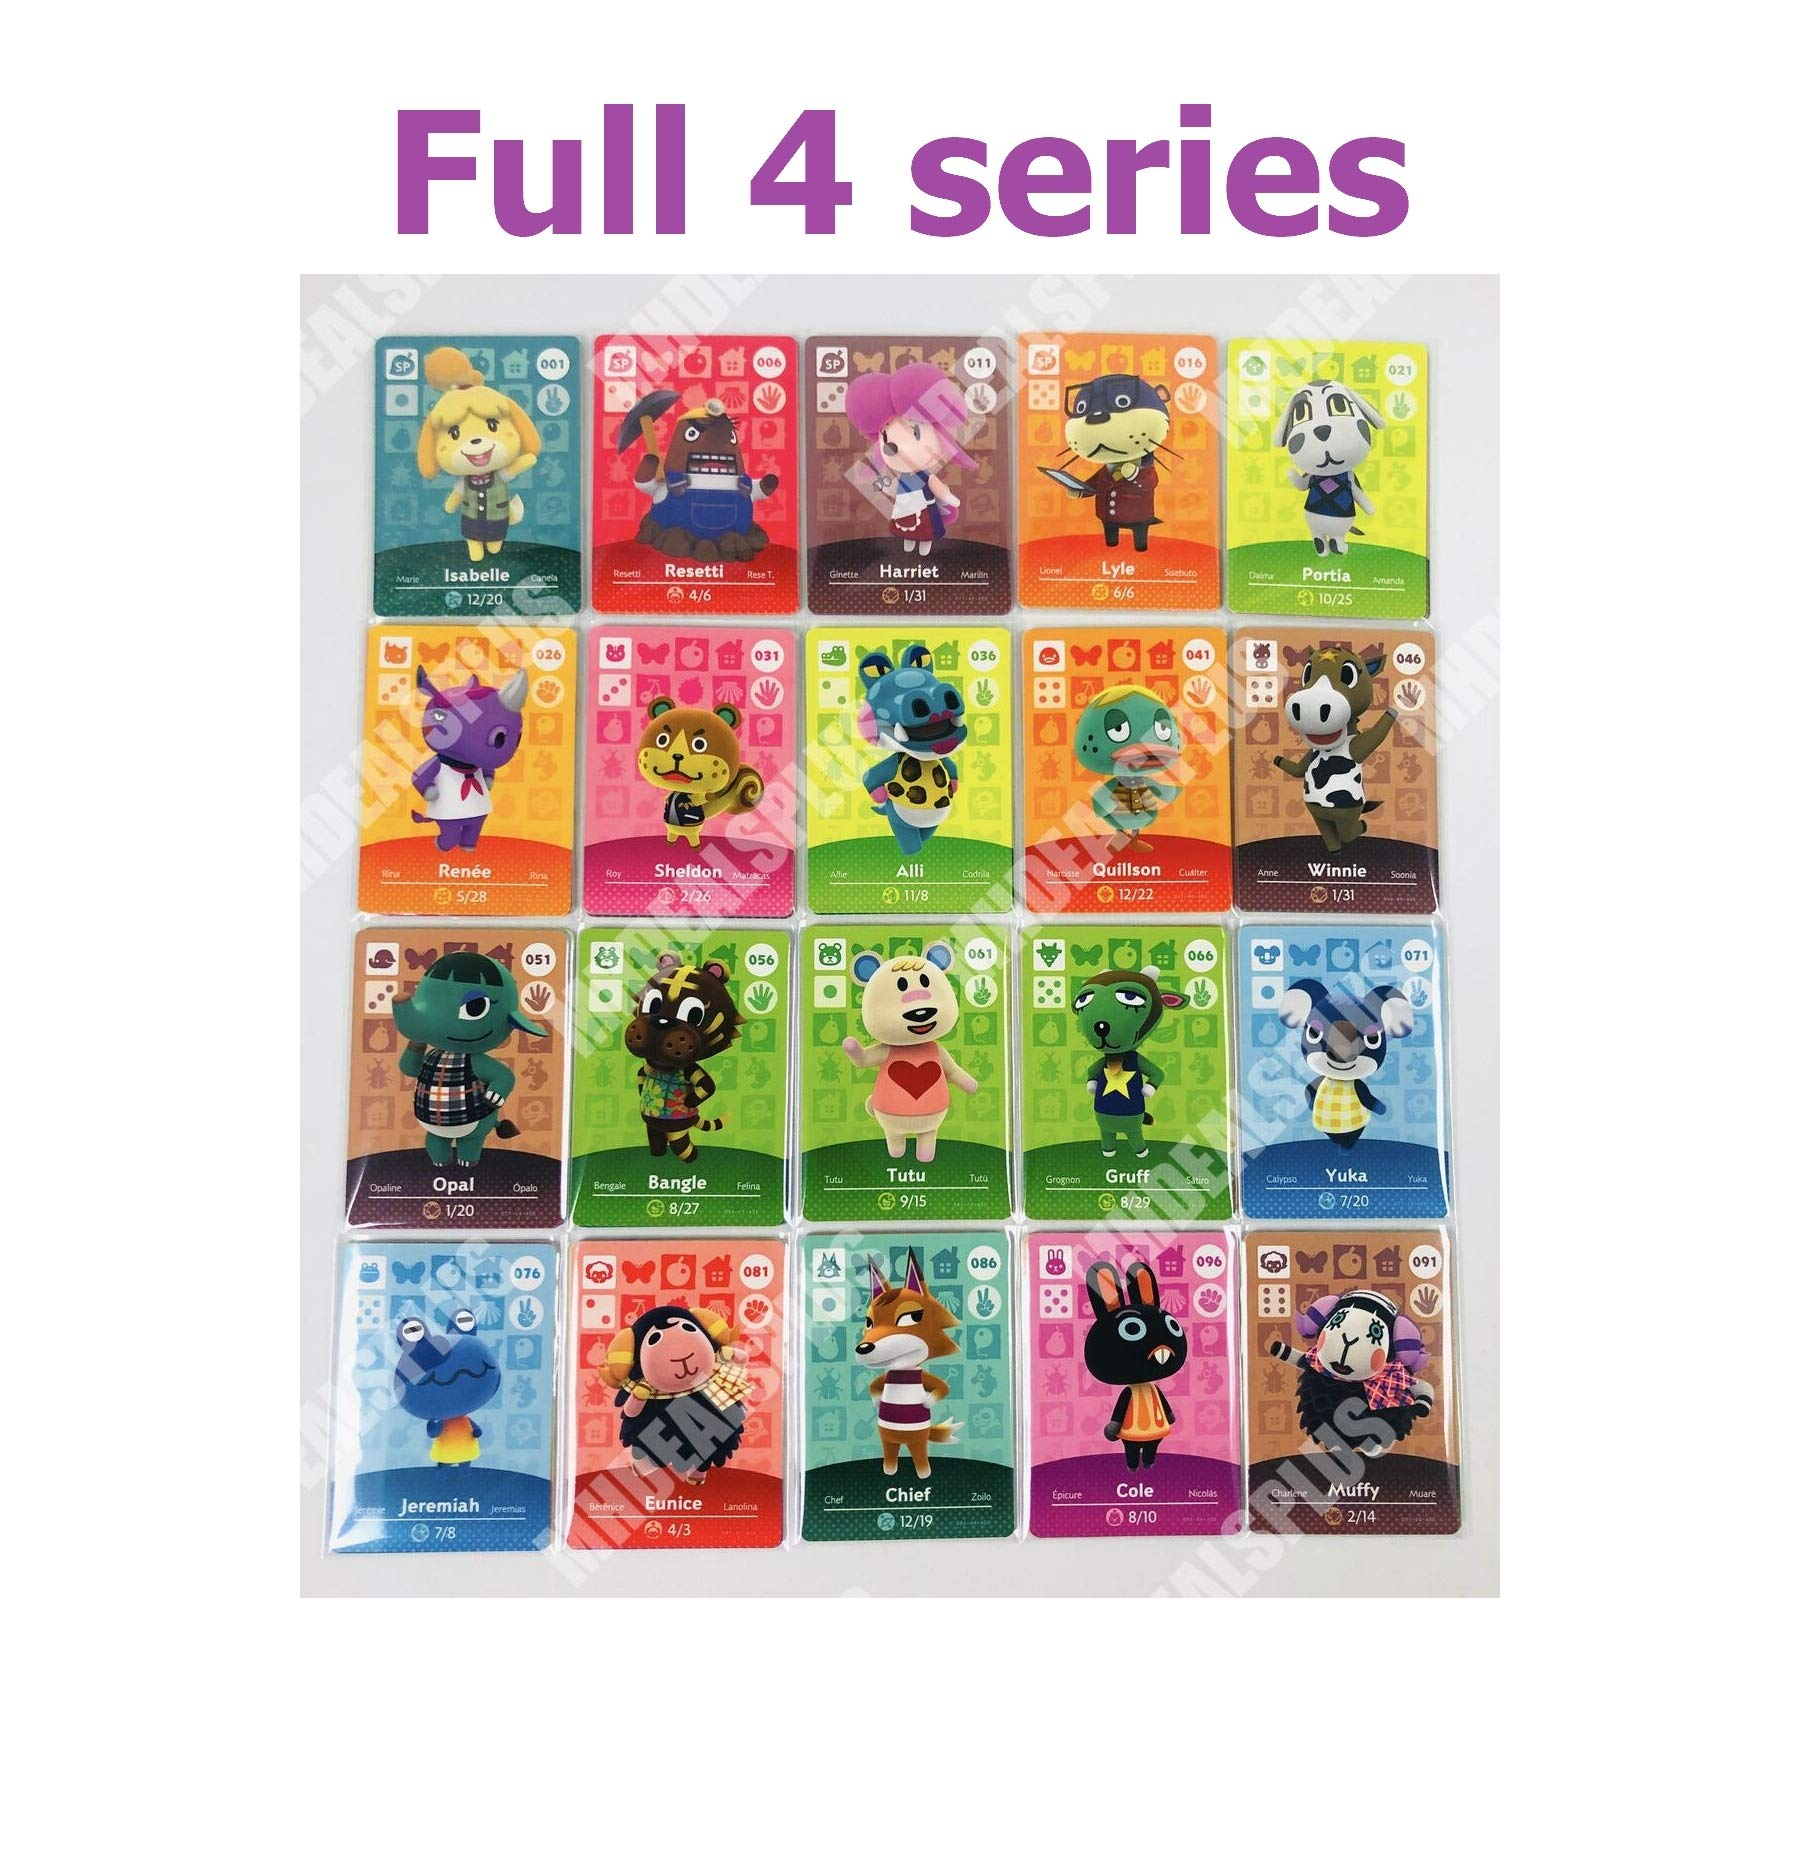 High Rated New Crossing 301-400 Cards Full Complete Set Series 4 US Version Quick Arrive